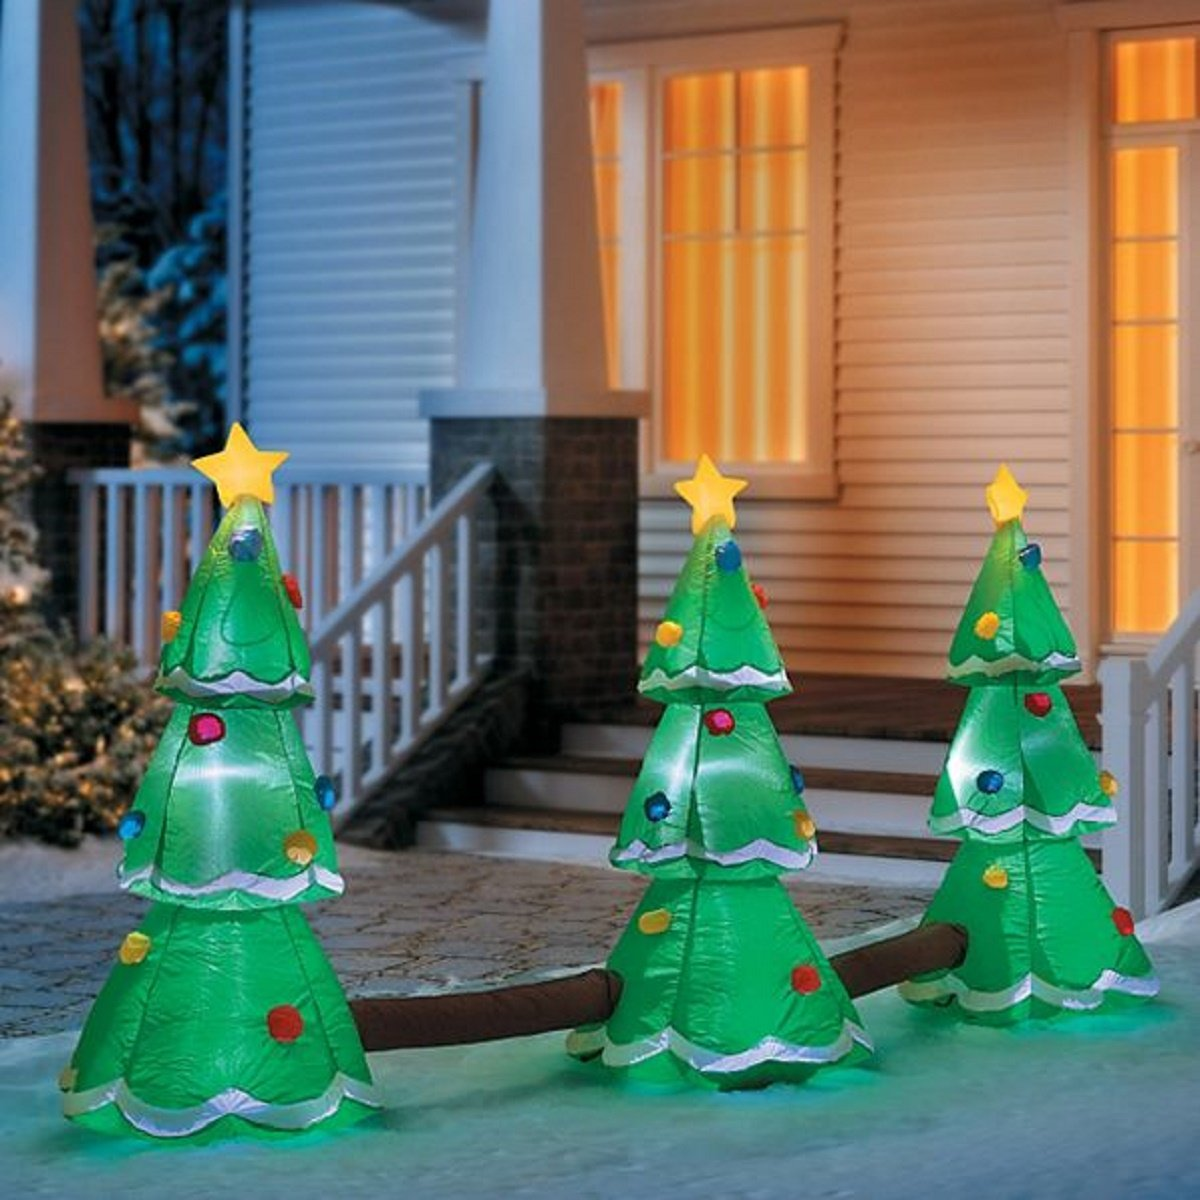 get quotations christmas inflatable 3 tree led musical lightshow airblown yard decoration - Christmas Yard Decorations Patterns